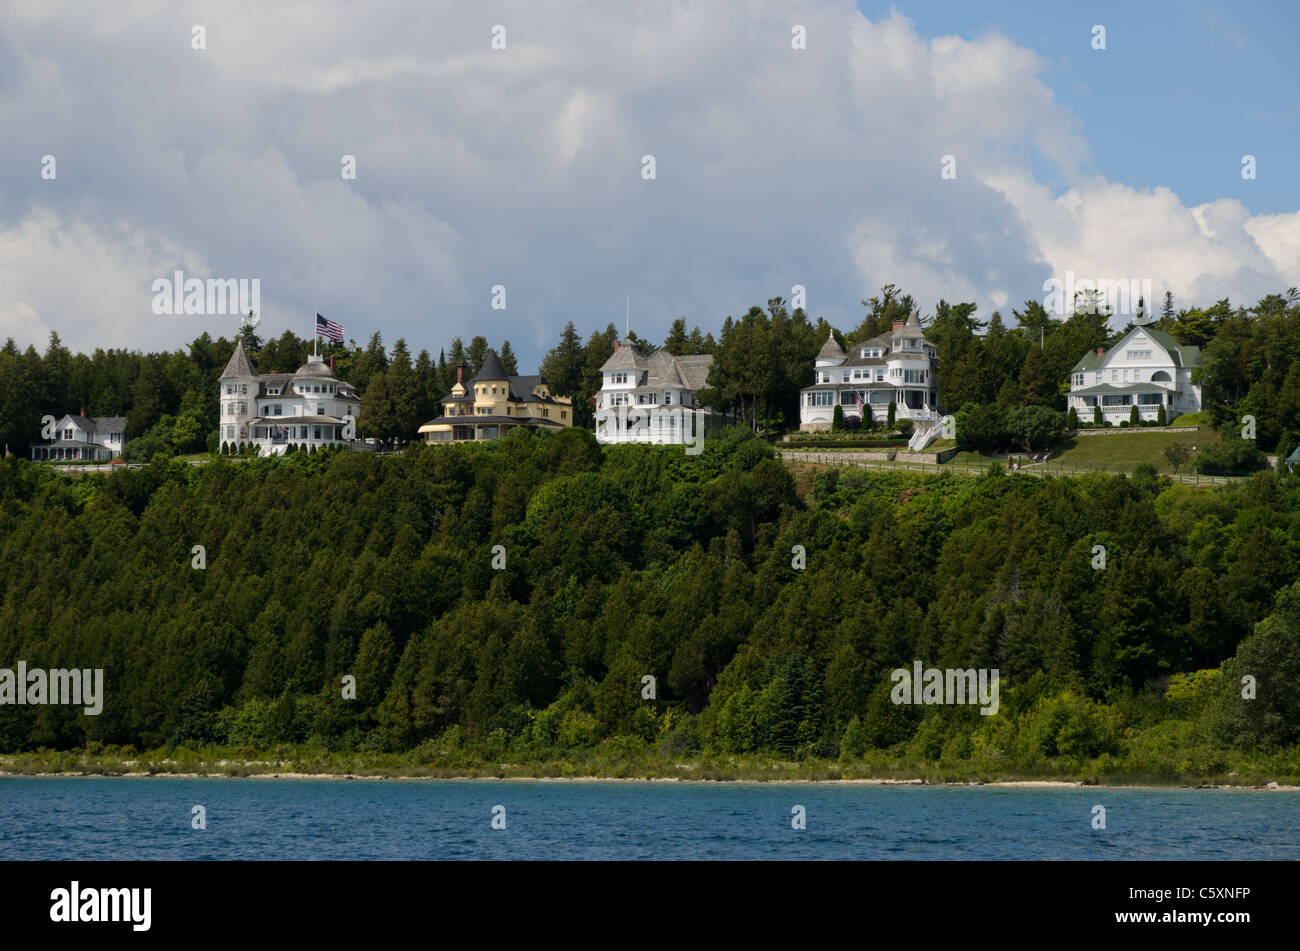 Row of Victorian historic houses on Mackinac Island, Michigan Stock Photo